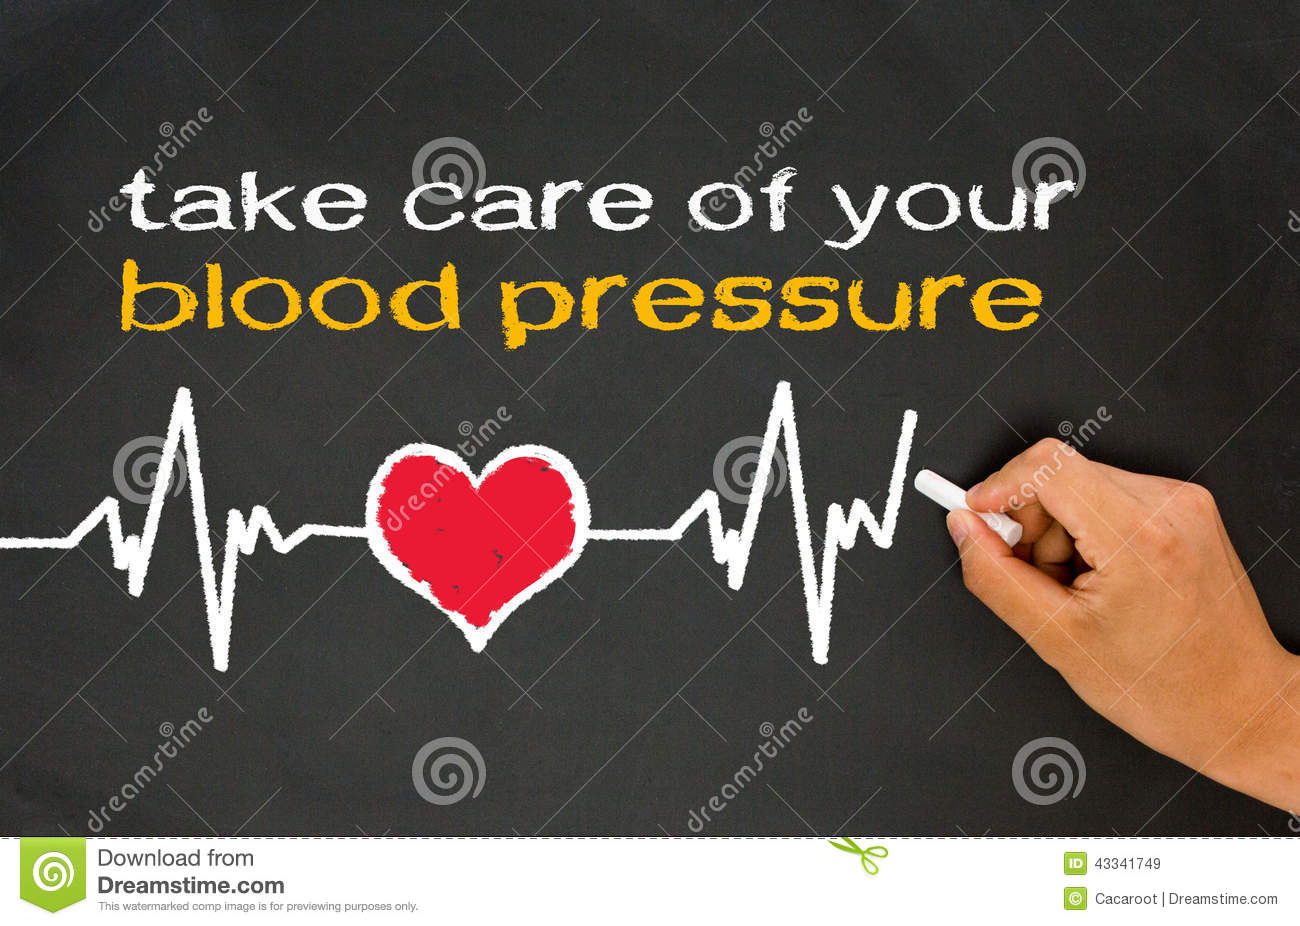 Take care of your blood pressure